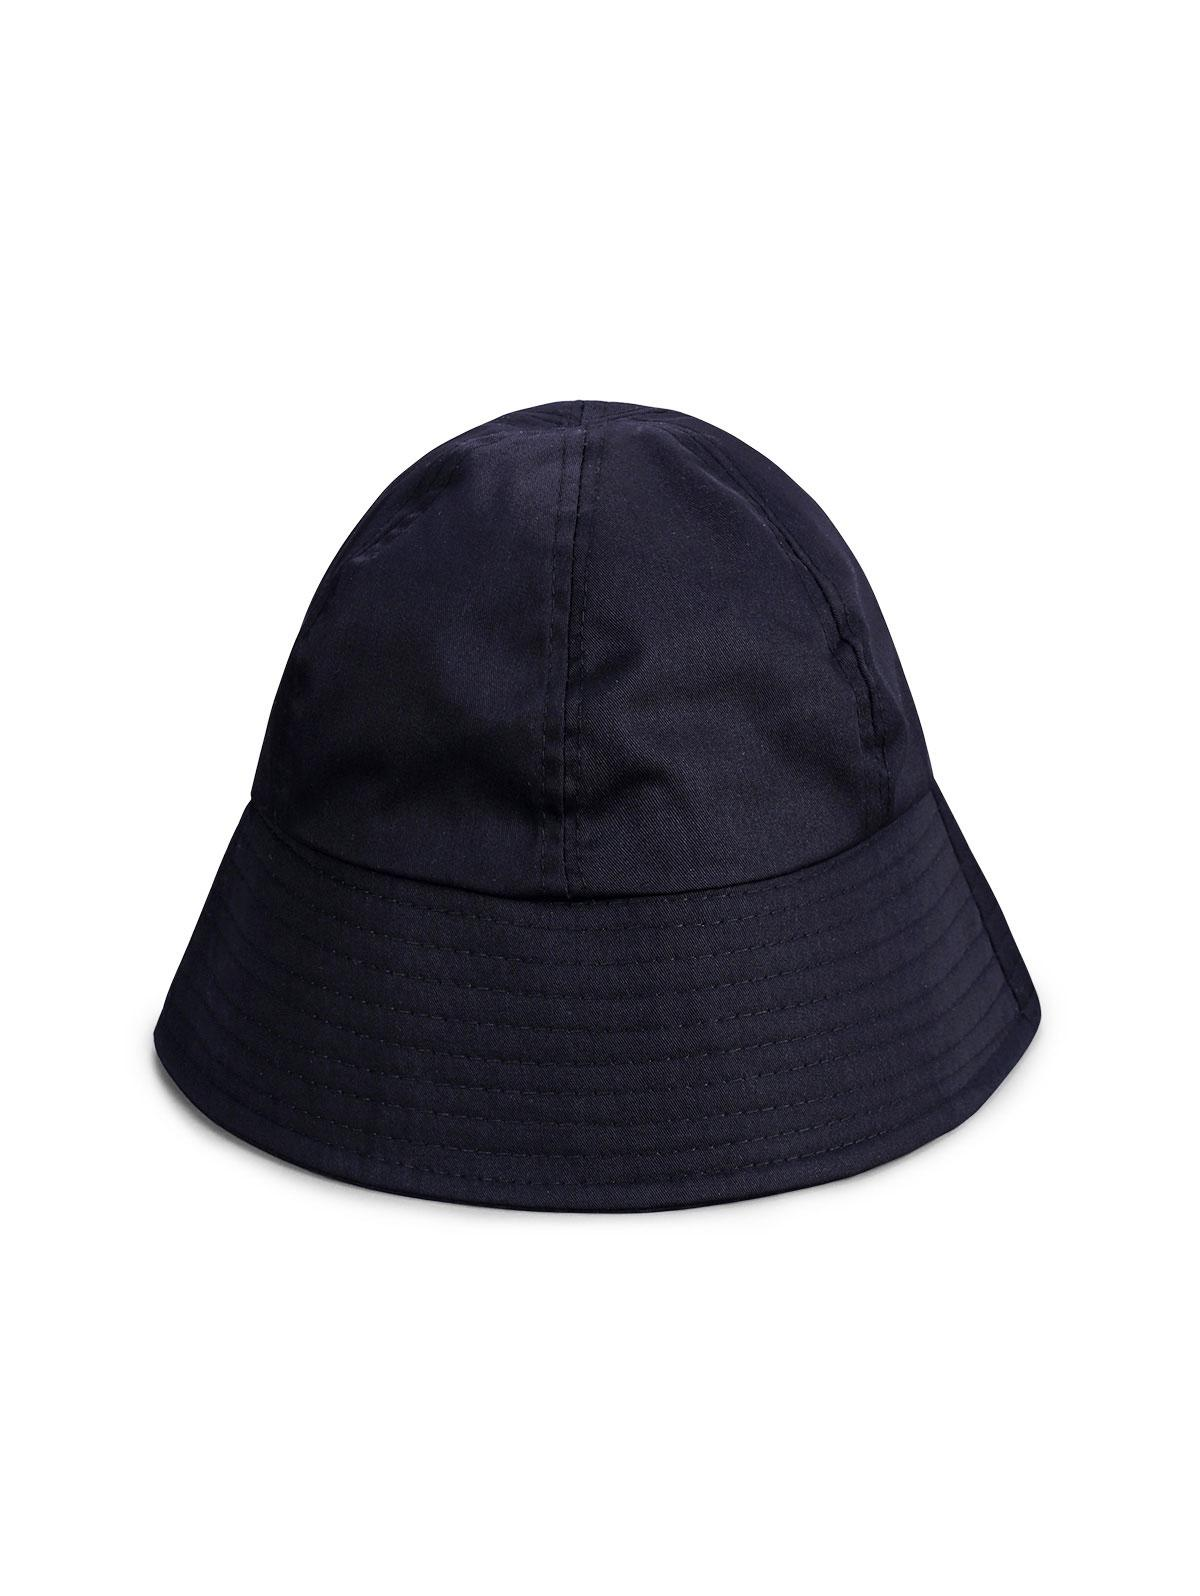 Solid Cotton Sunproof Bucket Hat